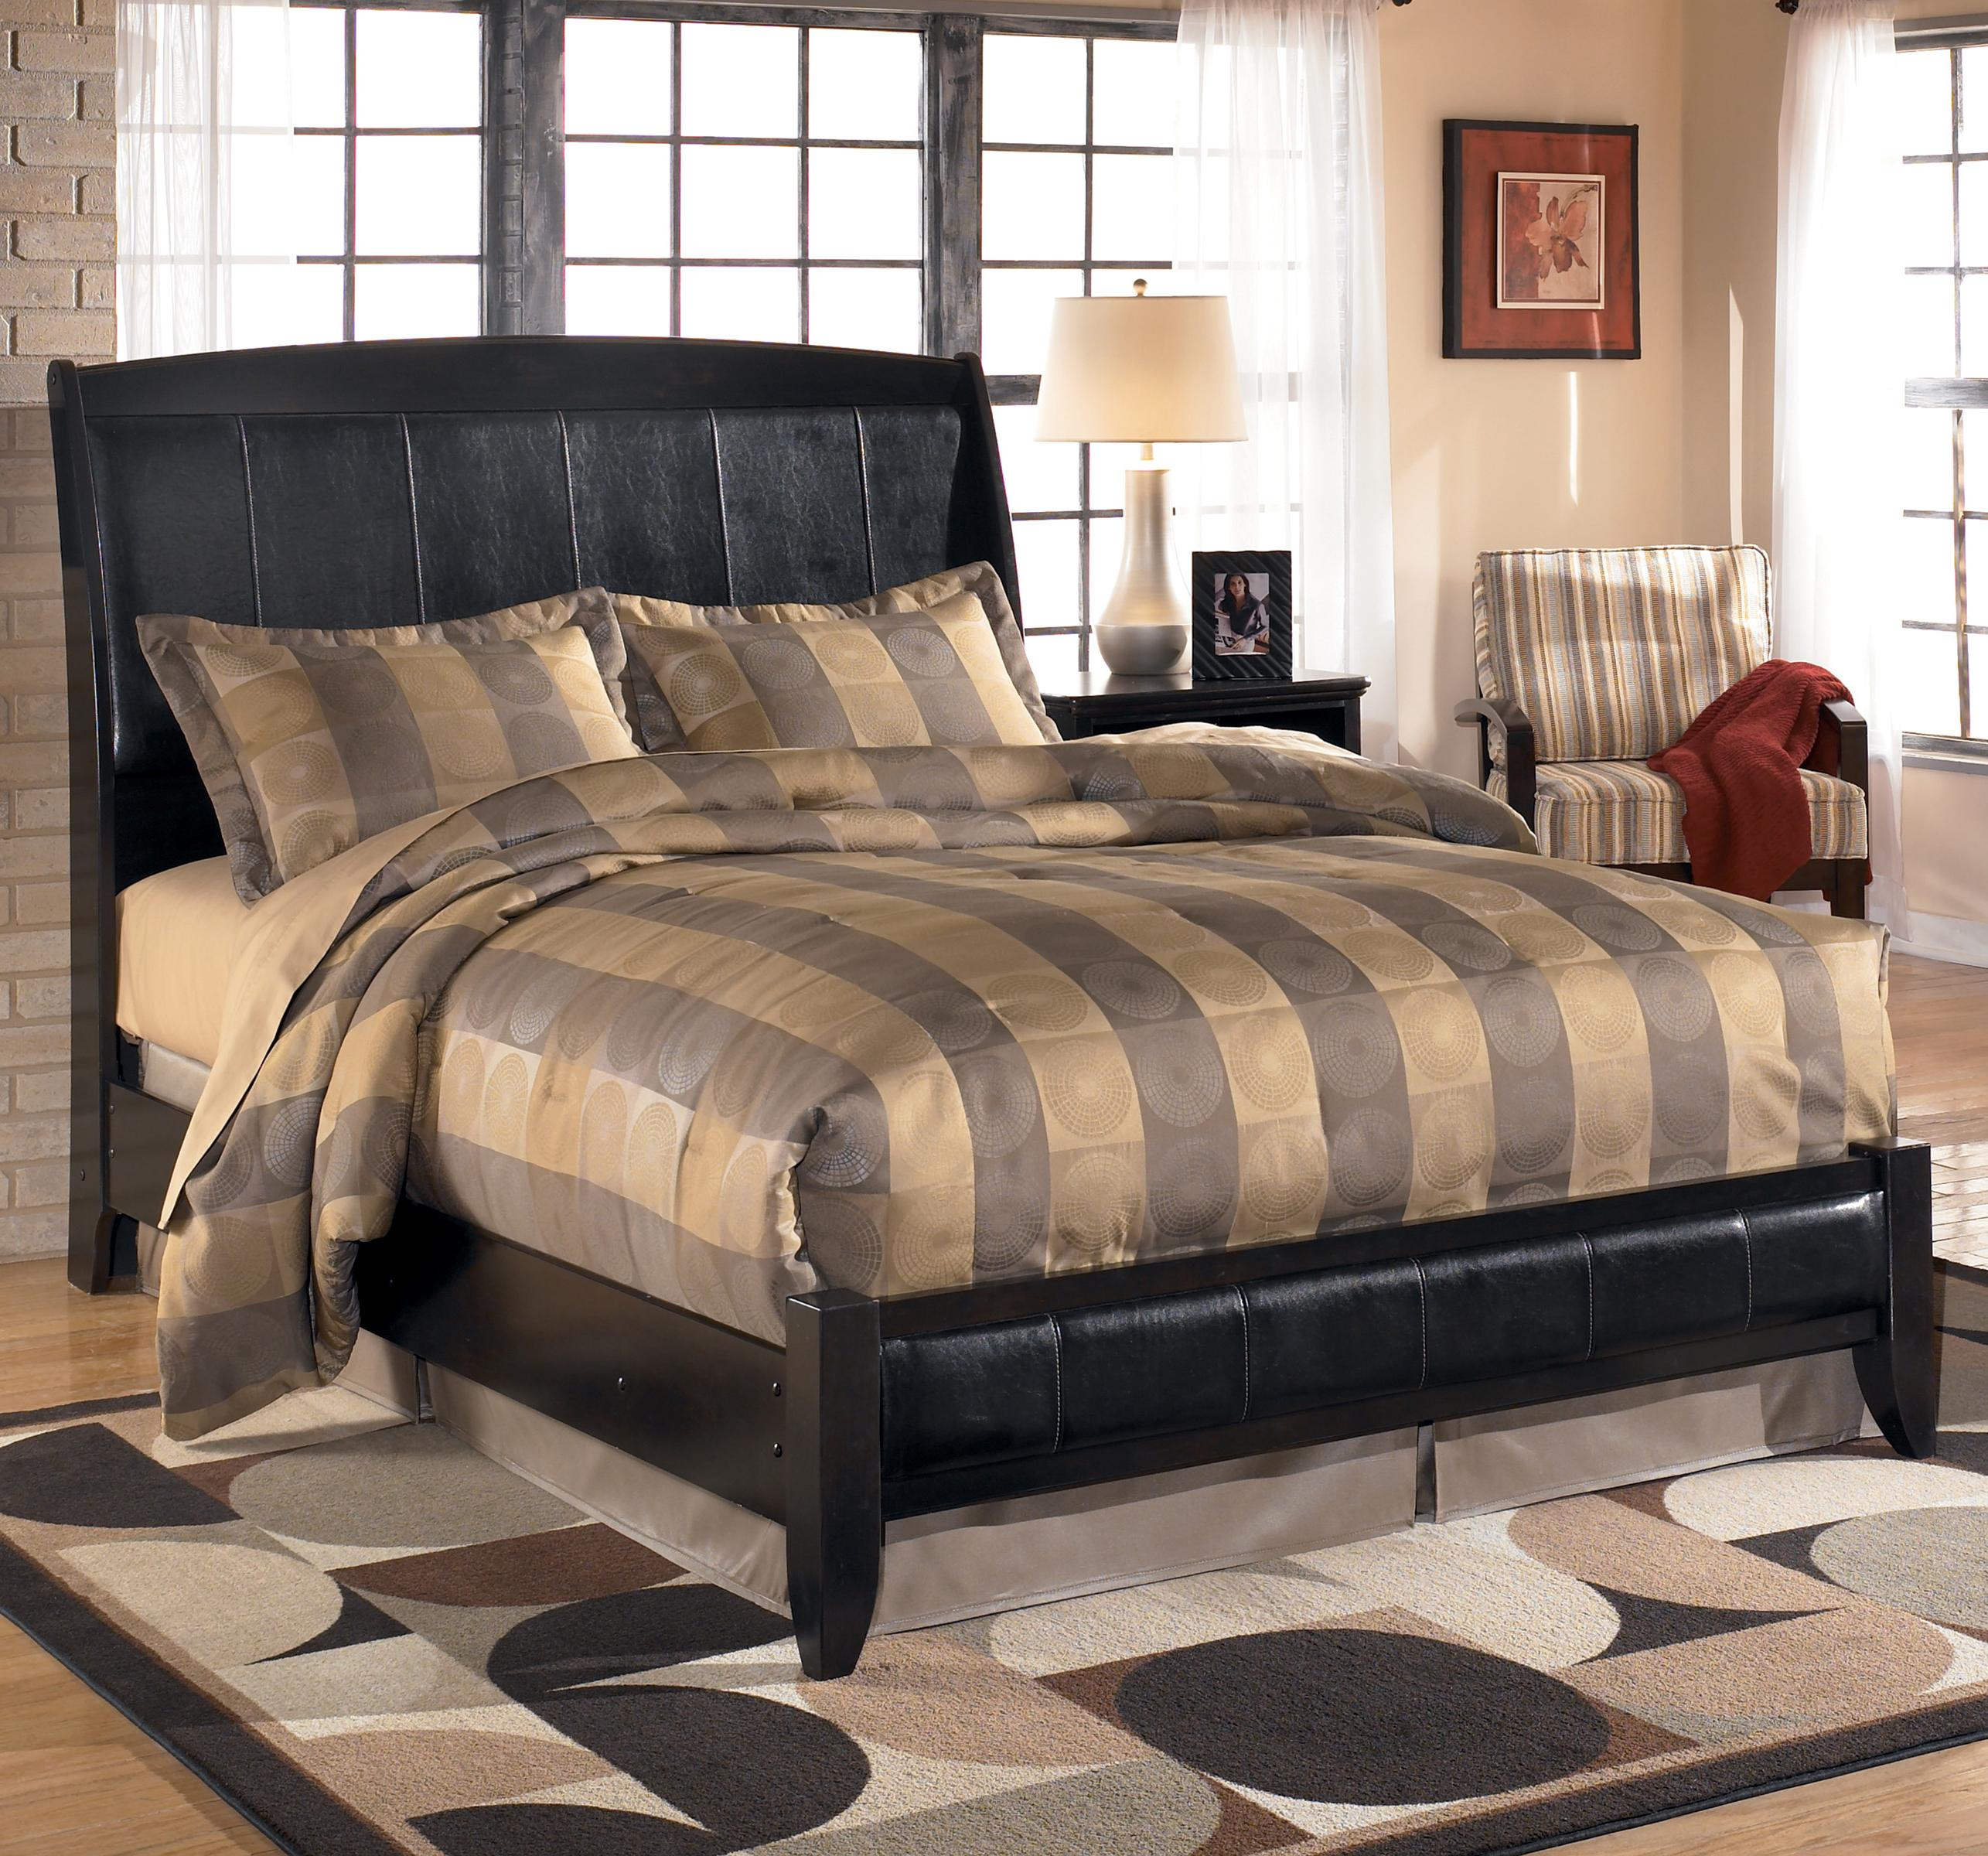 Signature Design by Ashley Harmony Queen Upholstered Platform Style Bed - Item Number: B208-74+77